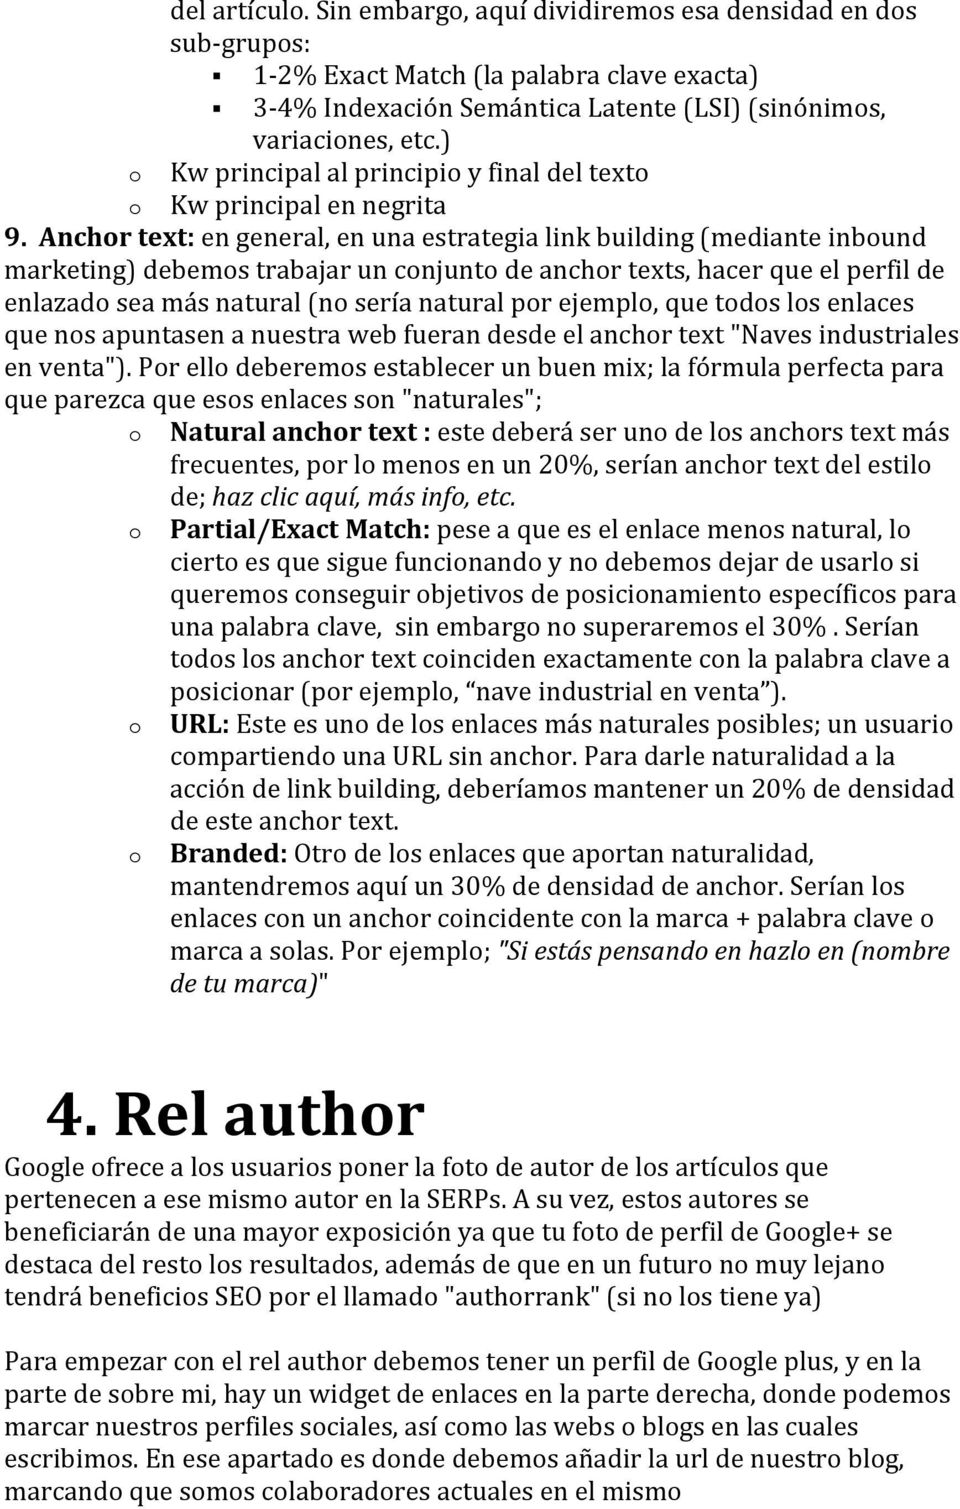 Anchor text: en general, en una estrategia link building (mediante inbound marketing) debemos trabajar un conjunto de anchor texts, hacer que el perfil de enlazado sea más natural (no sería natural